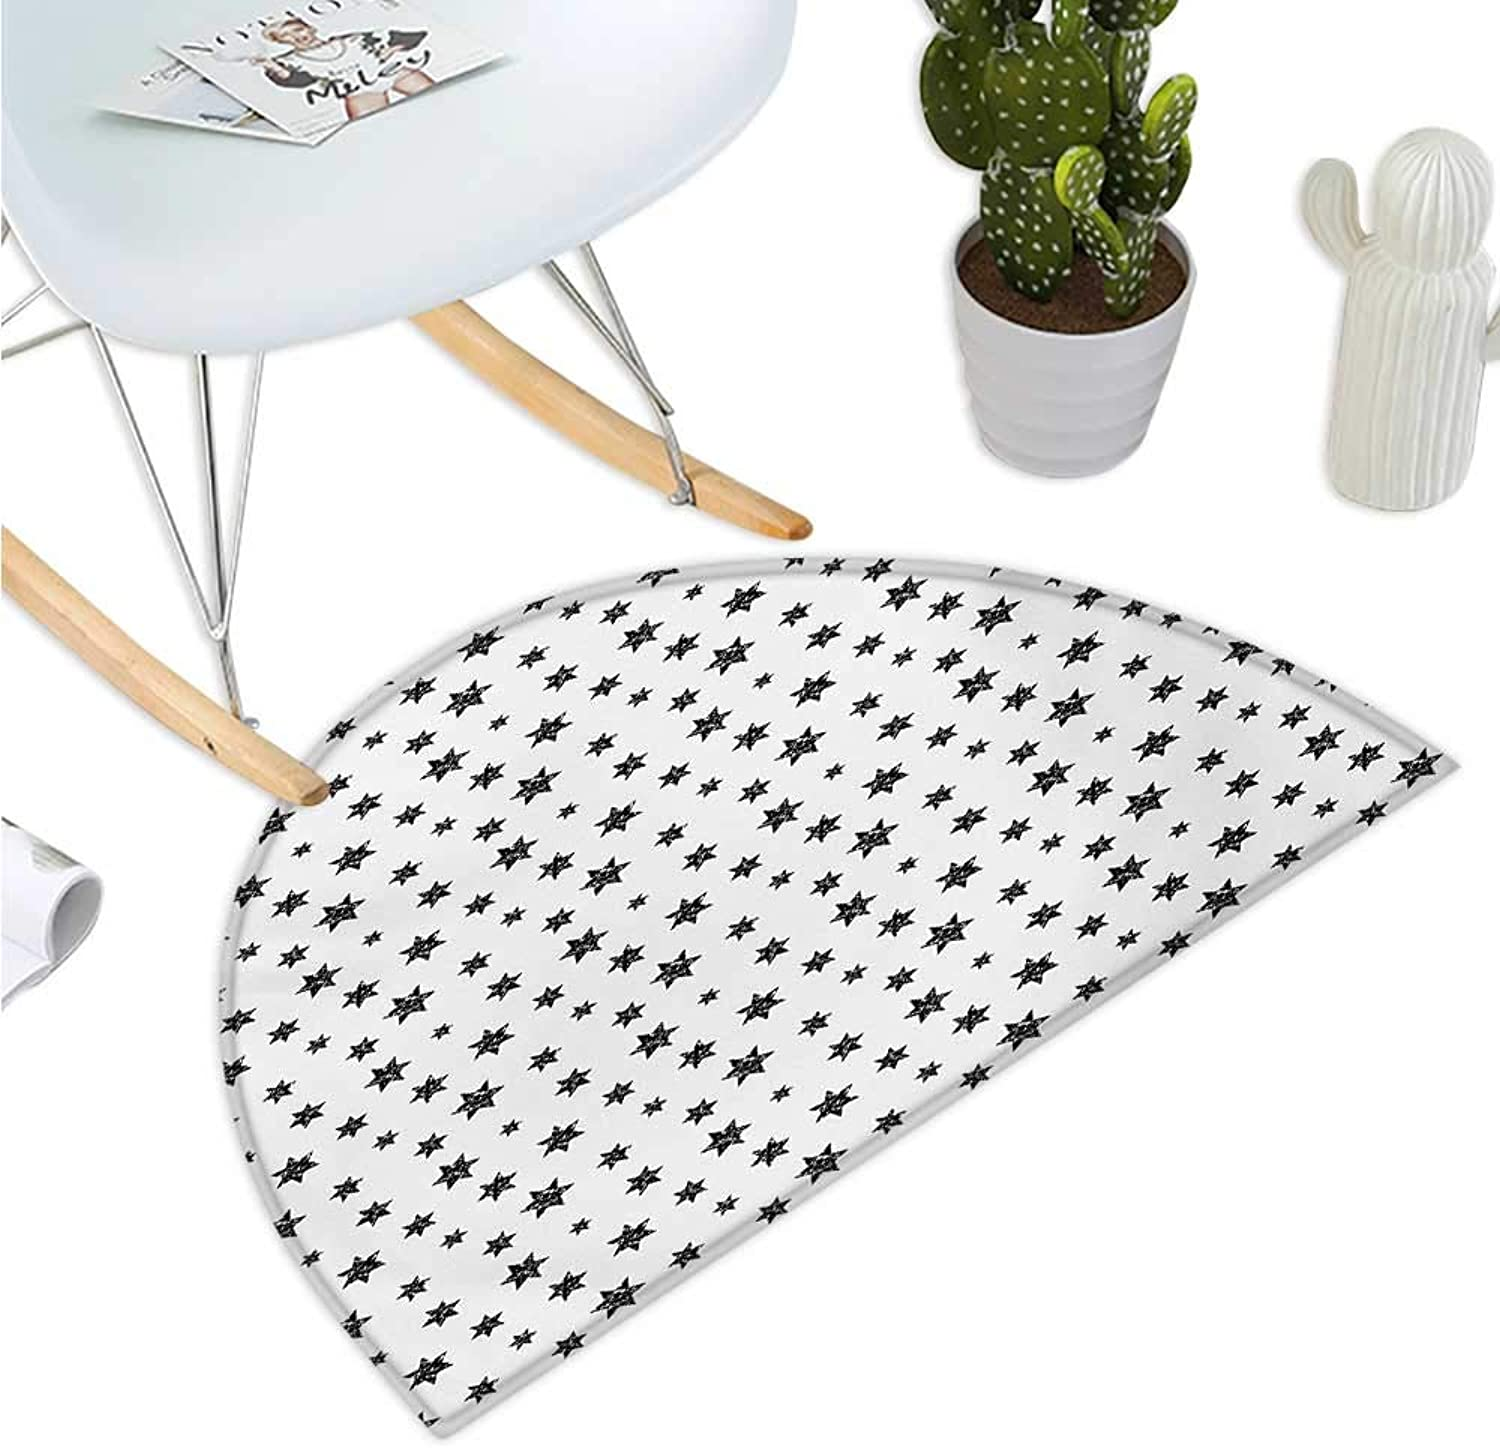 Star Semicircular Cushion Starry Pattern with Little Big Stars Punk Grunge Style Modern Design for Teens Room Entry Door Mat H 39.3  xD 59  White Black